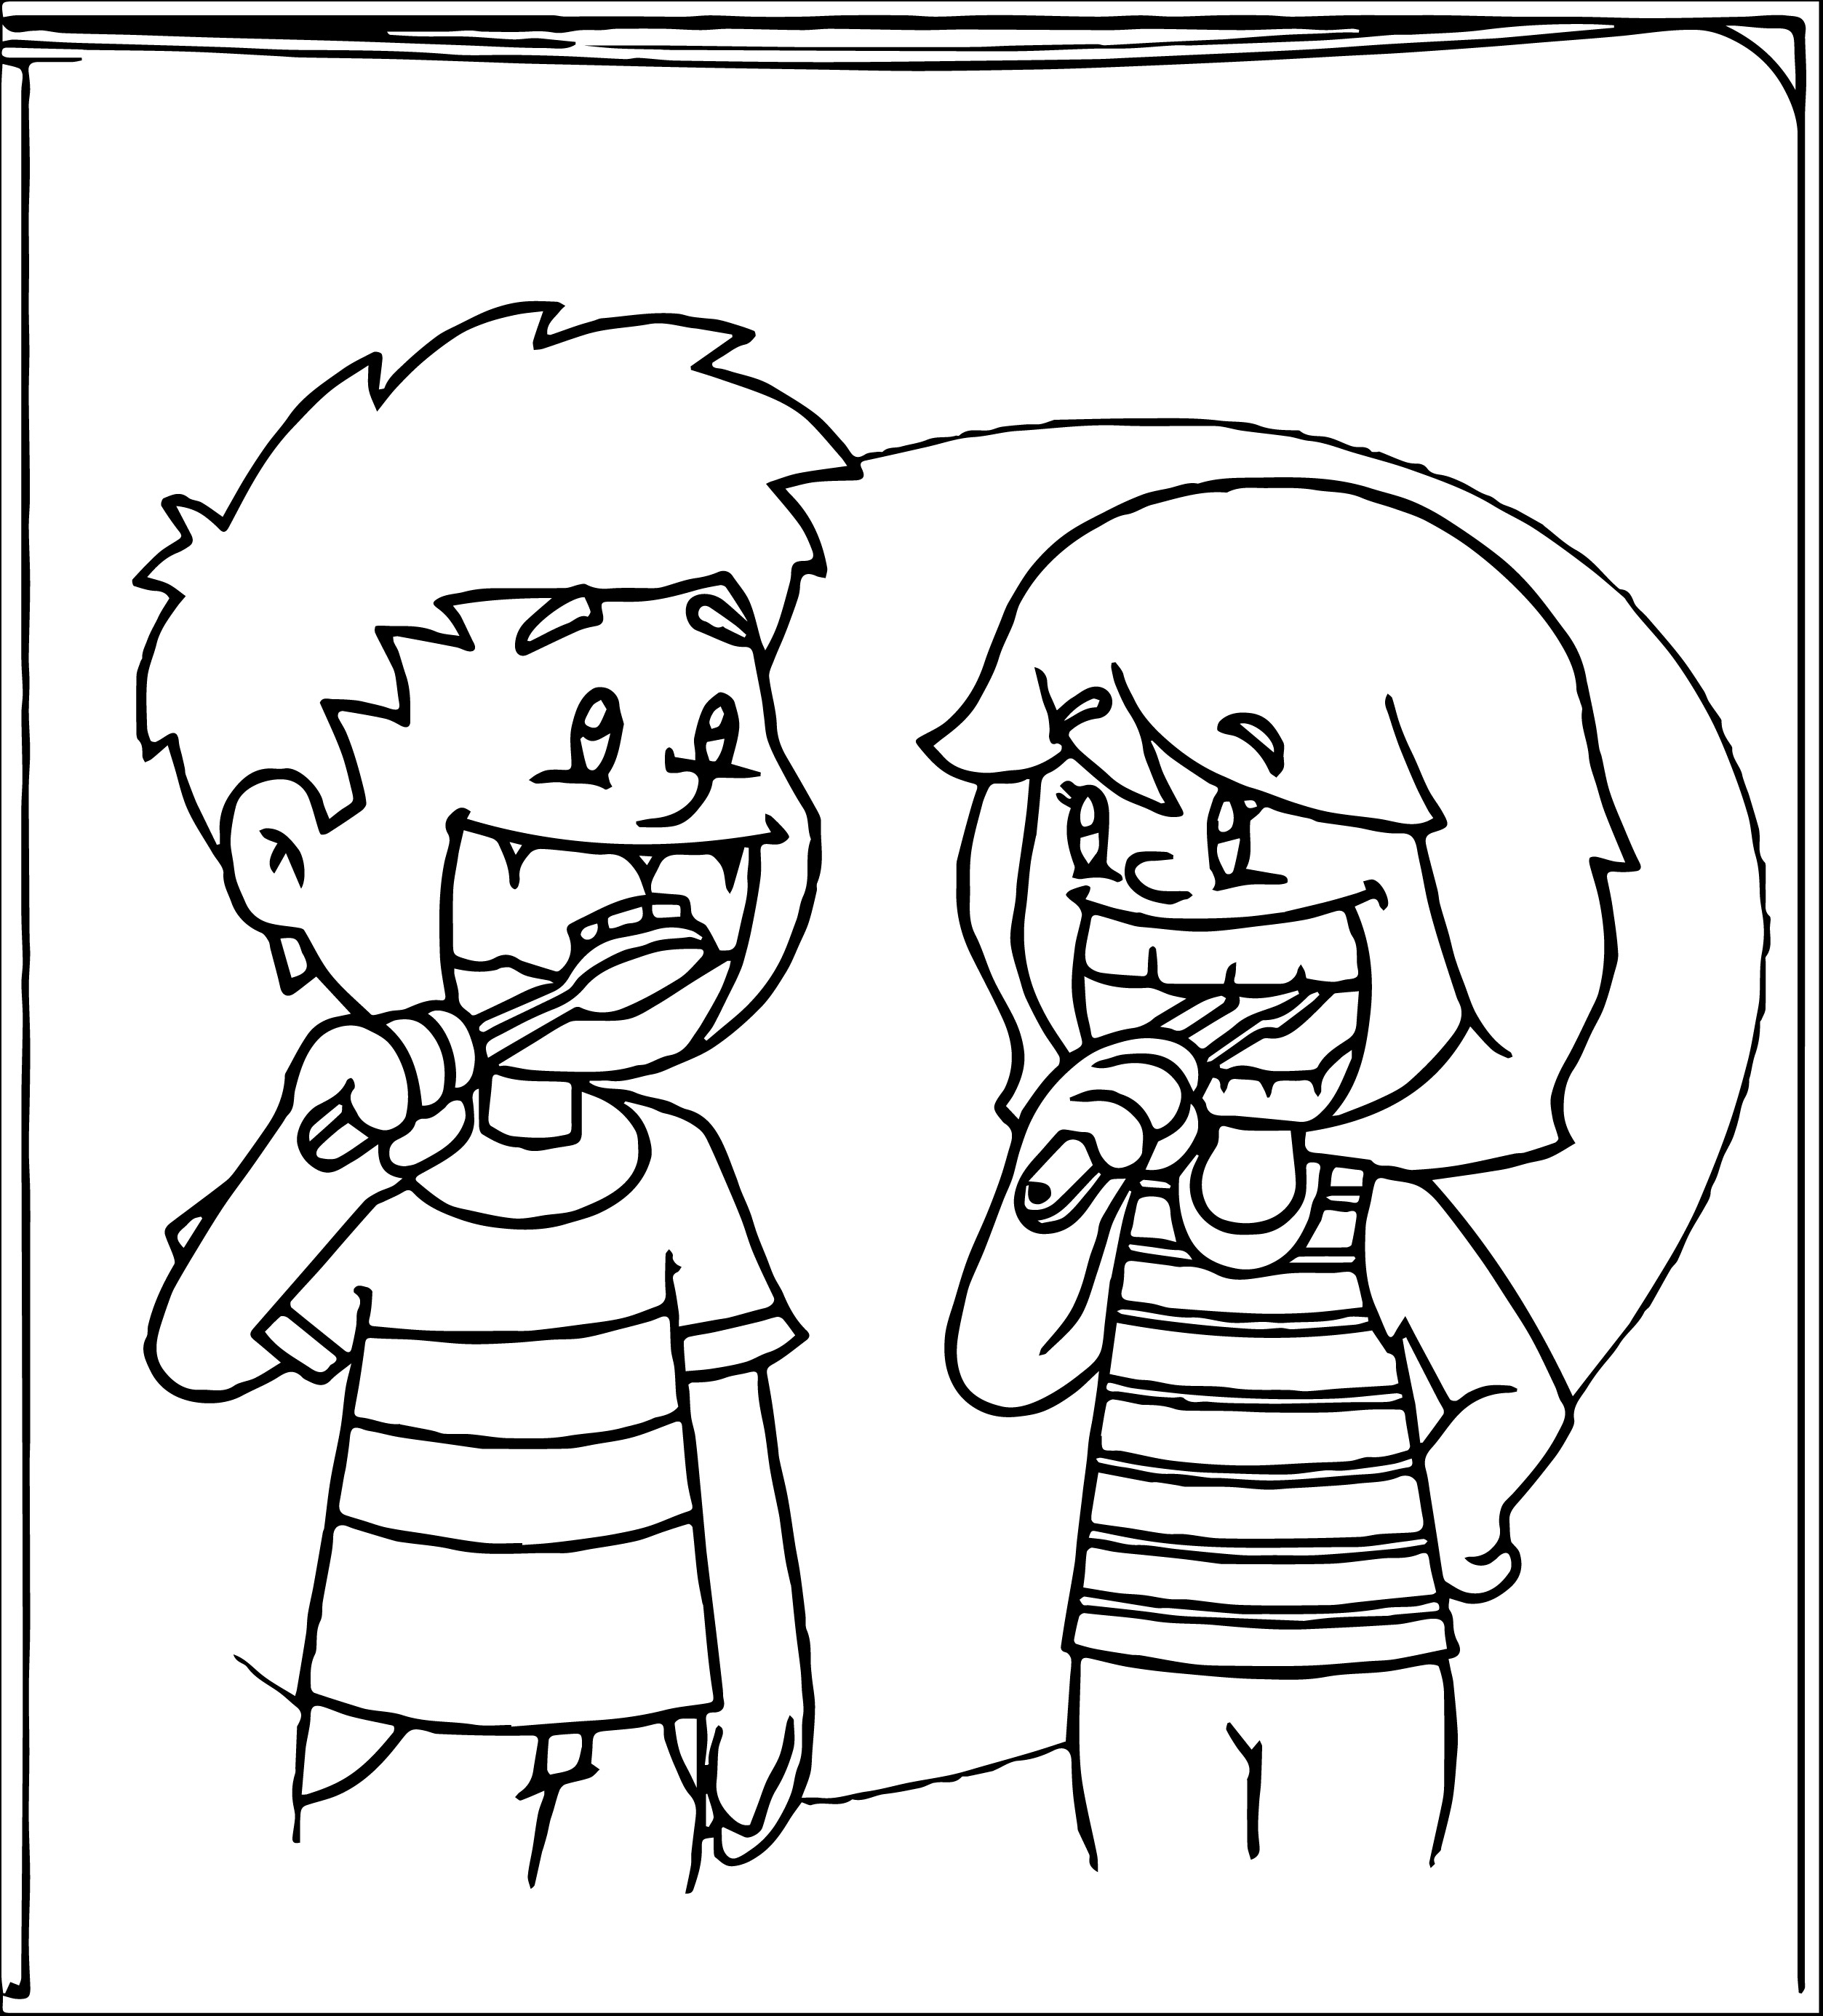 Kid Brushing Teeth Coloring Page